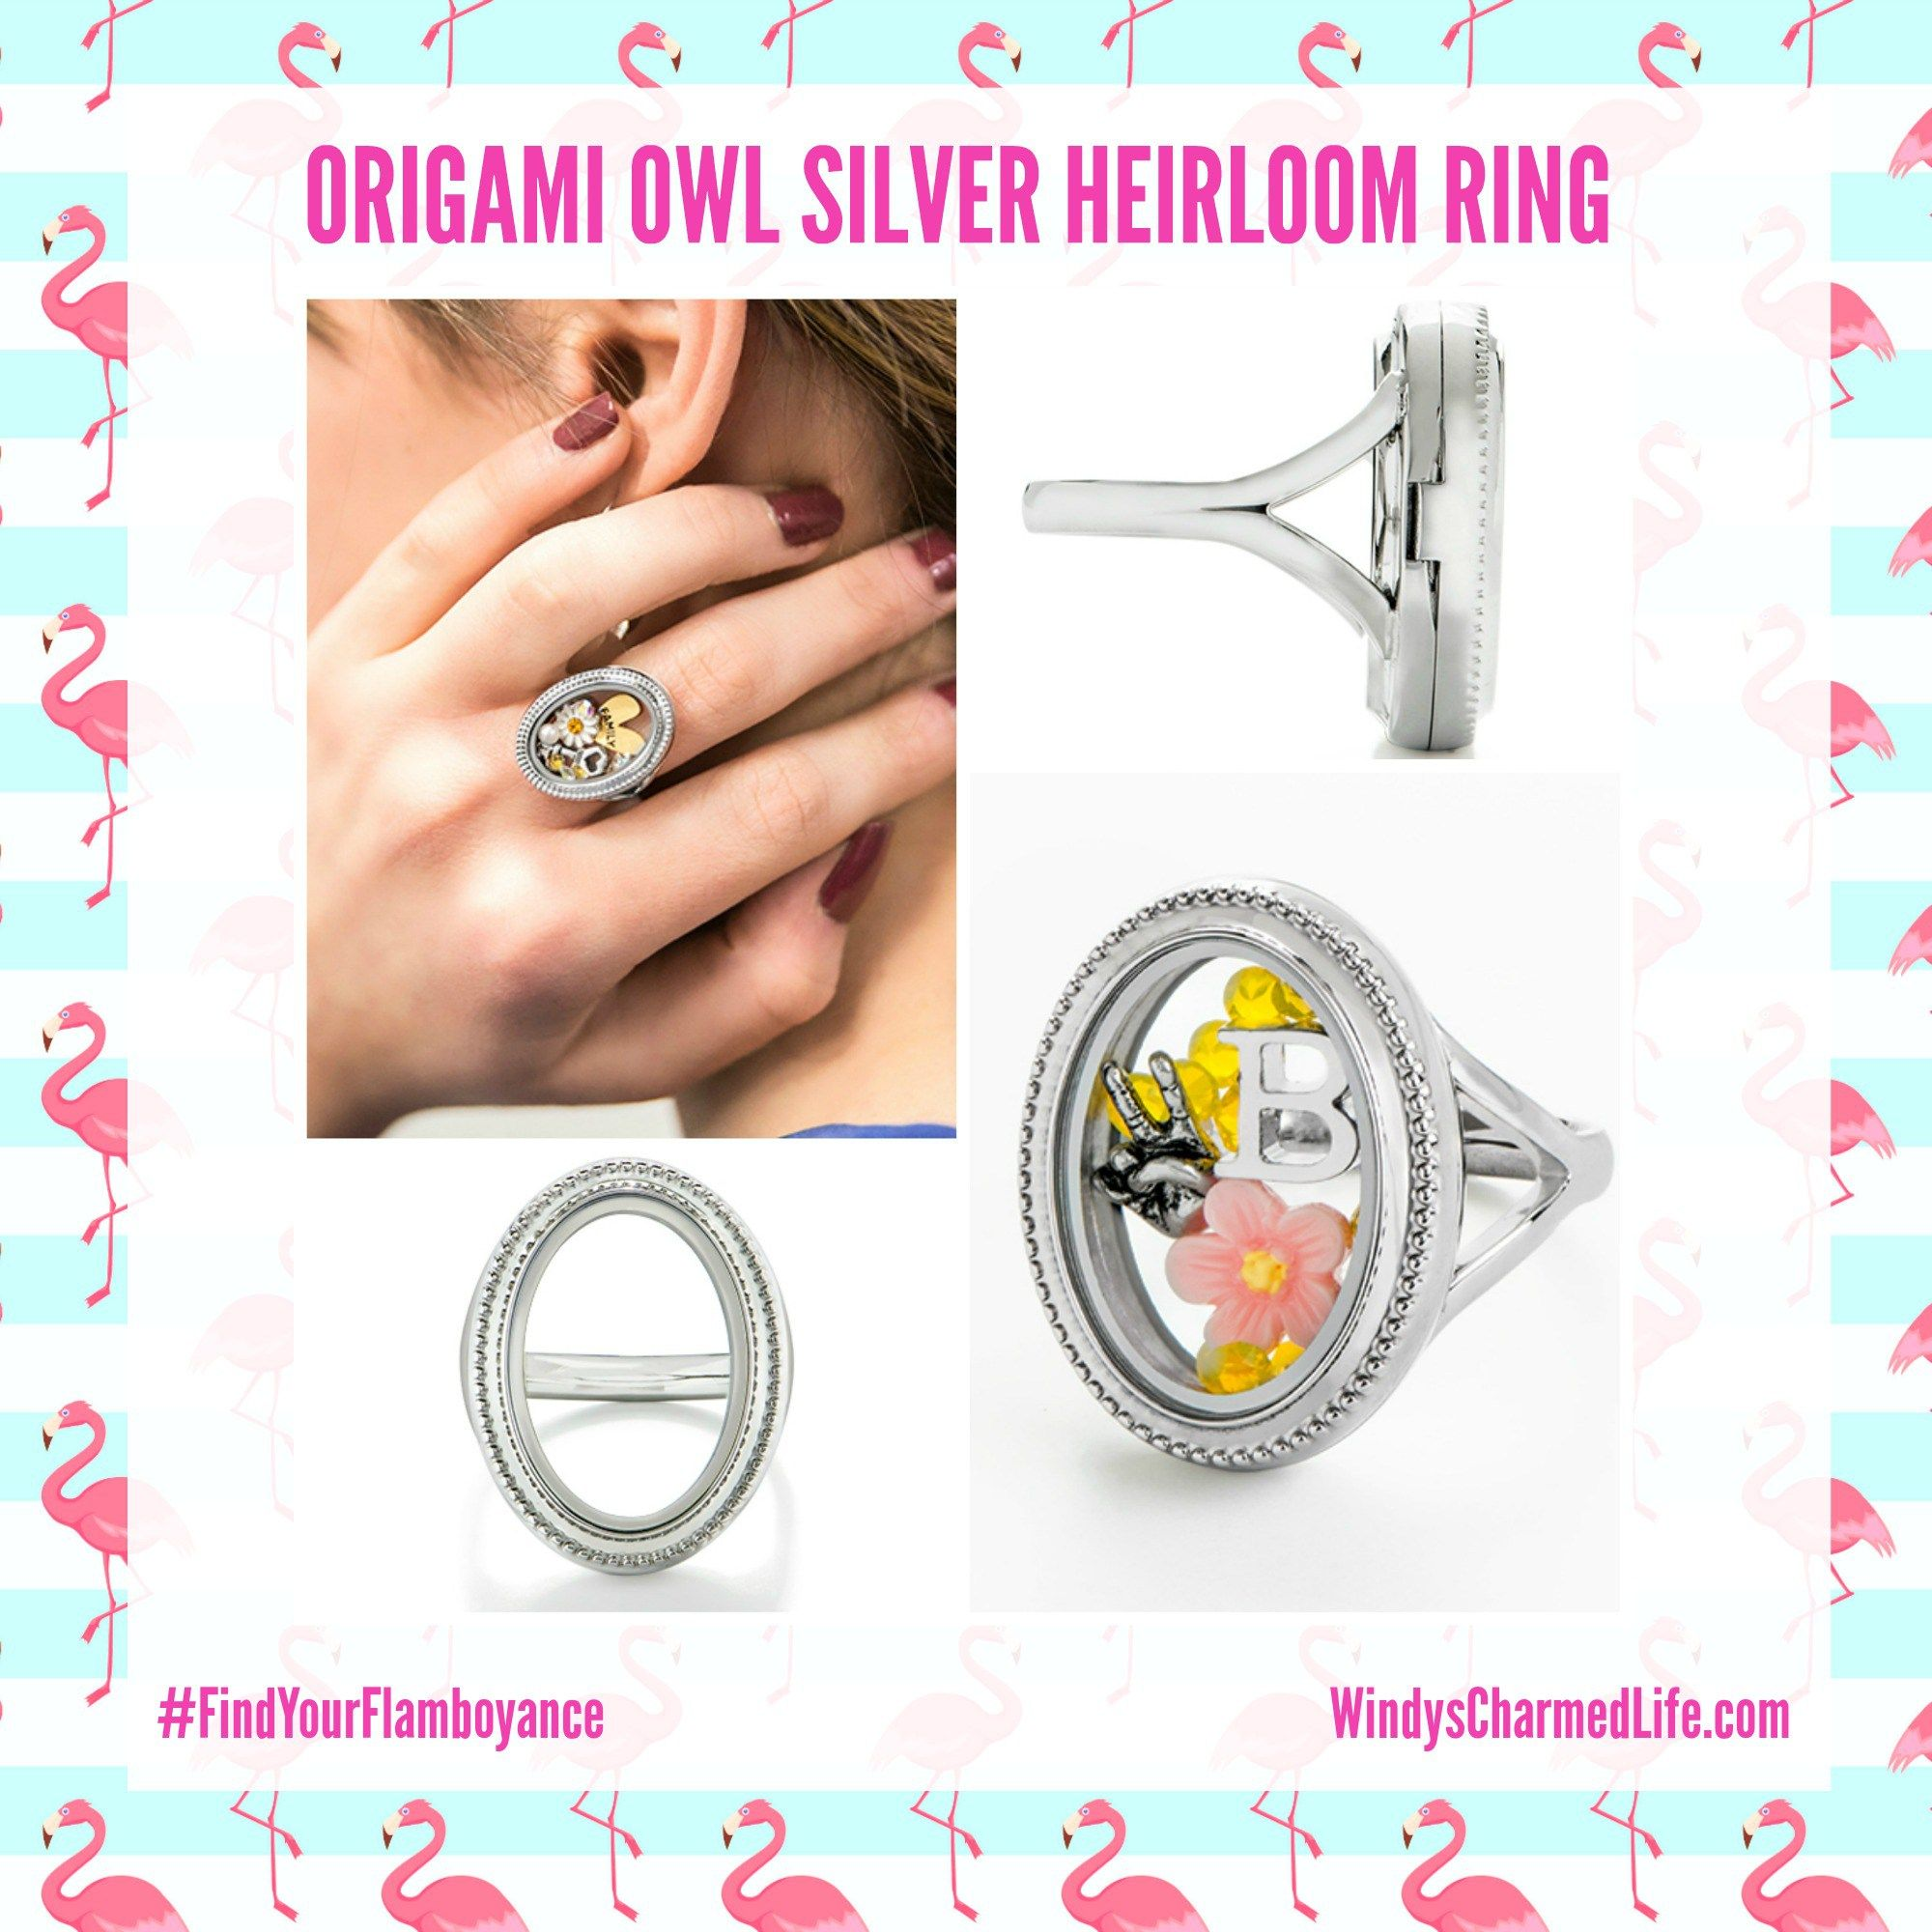 Introducing The New Origami Owl Locket Ring Available Now In Sizes 6 7 8 And 9 See All The New Styles First At Windys Origami Owl Origami Owl Lockets Origami